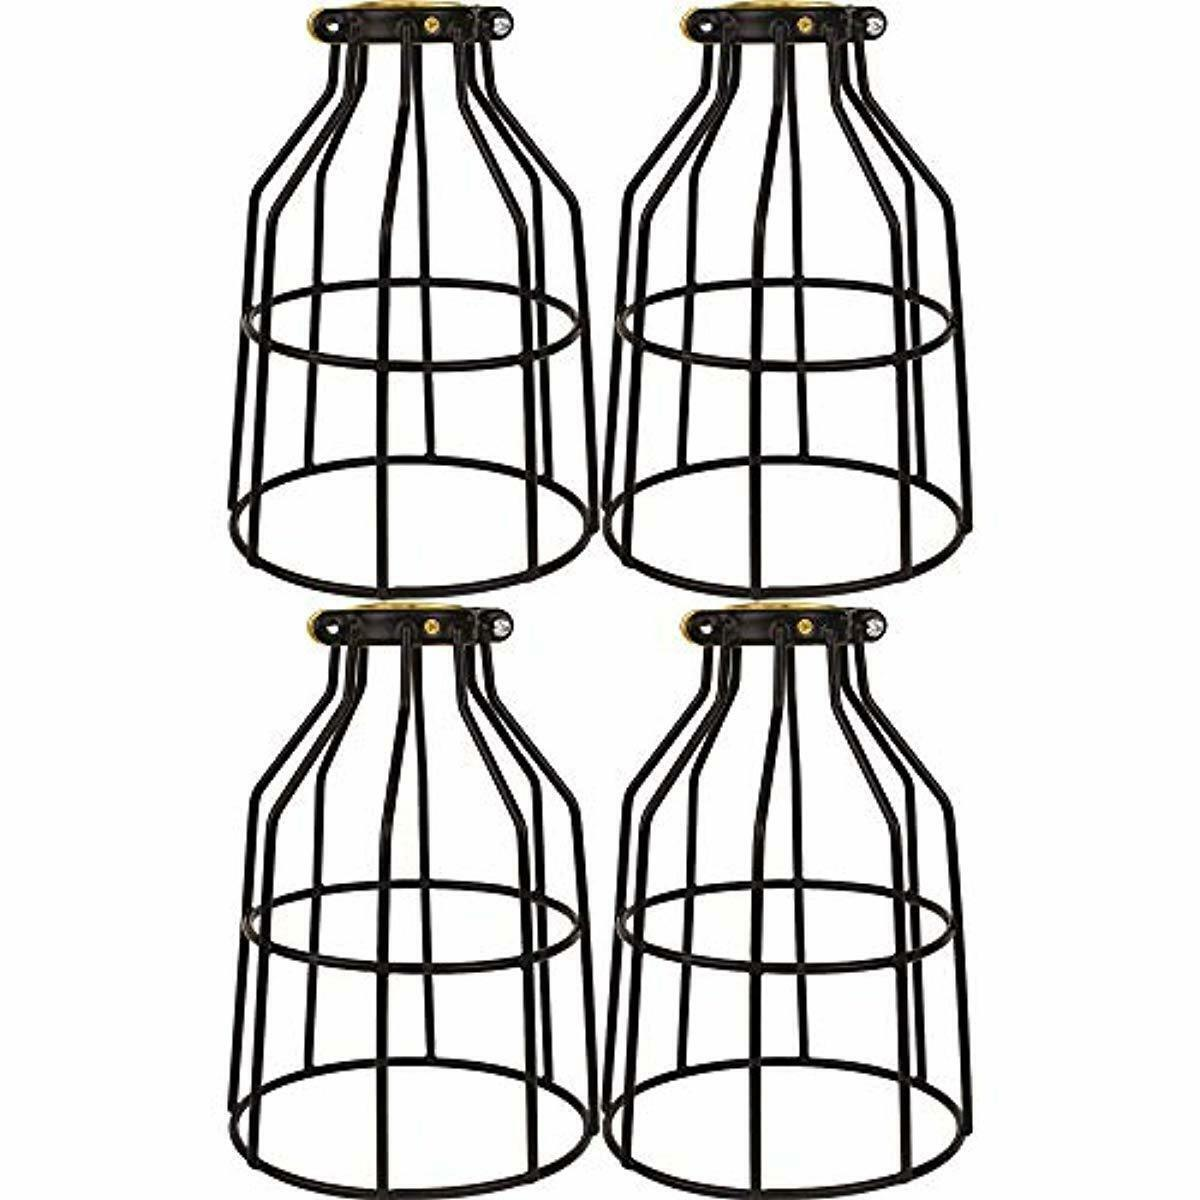 4x Metal Bulb Guard Wire Cage Pendant Lamp Shades Ceiling